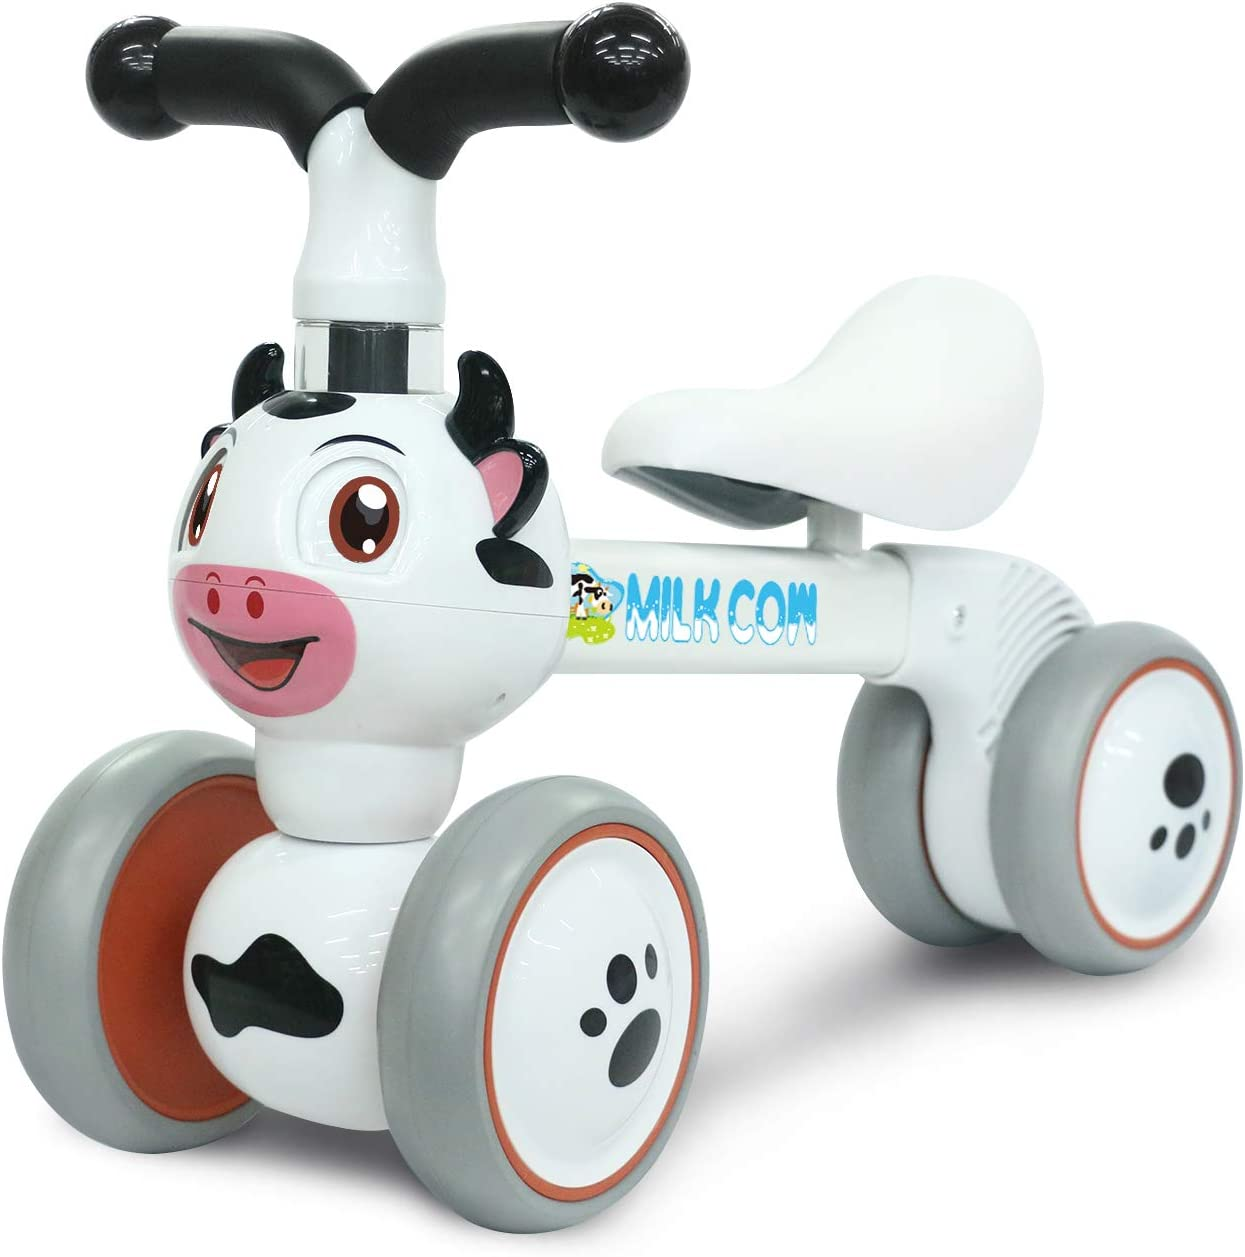 YGJT Baby Balance Super Special SALE held Bike Ages 1-3 Indoor Old Cheap bargain Non-Pedal Walke Year